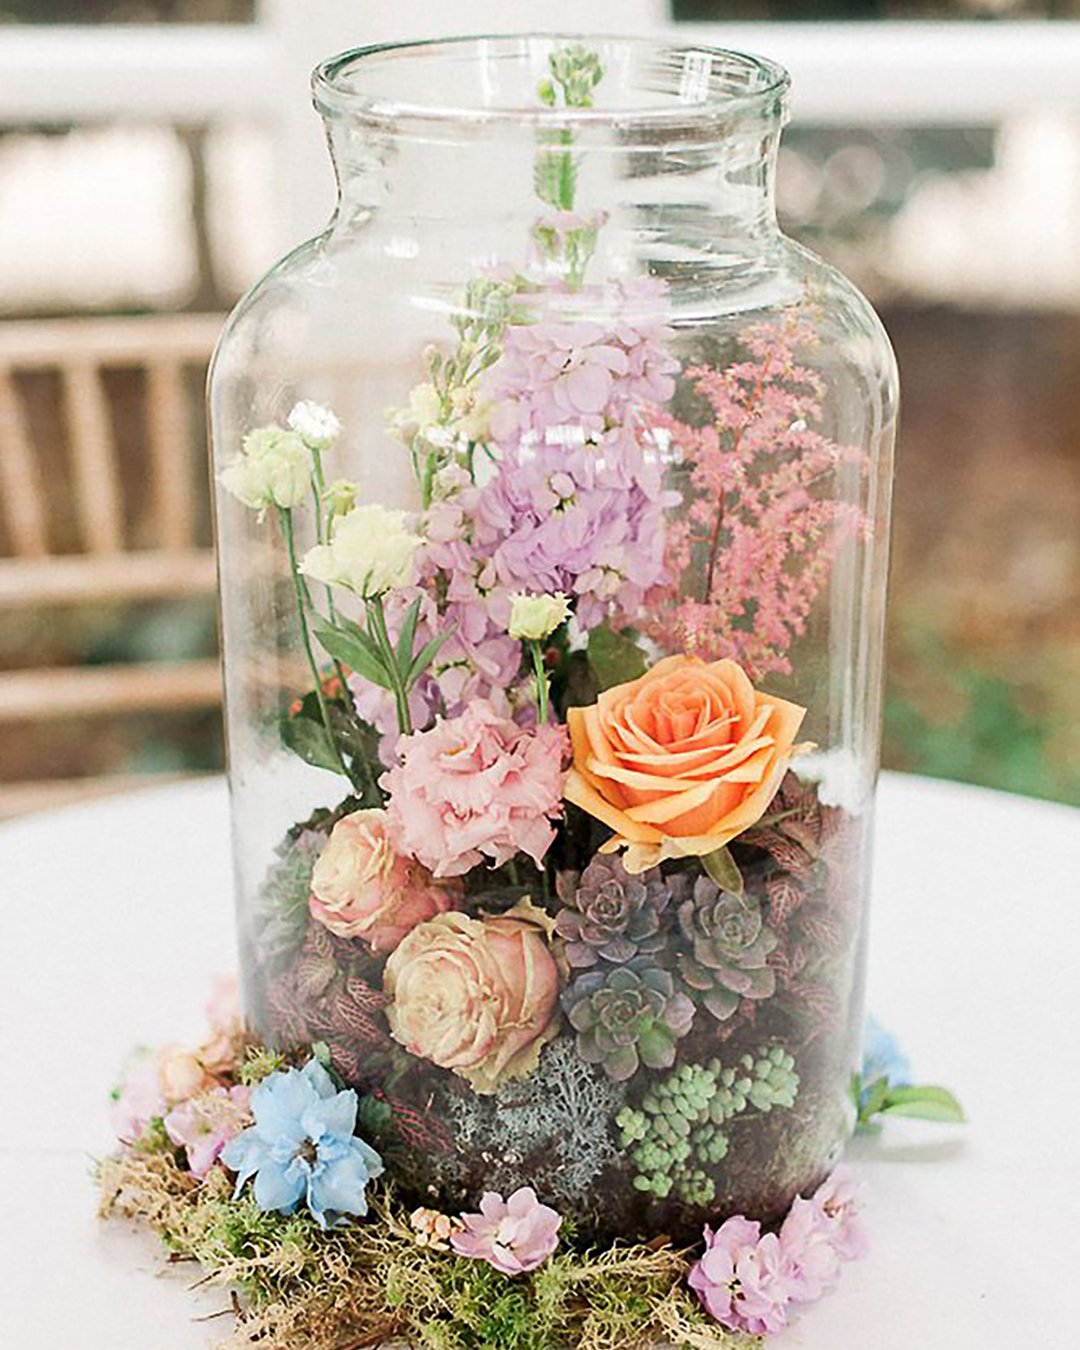 cheap boho decor flowers and succulents in glass can kate neilen photography